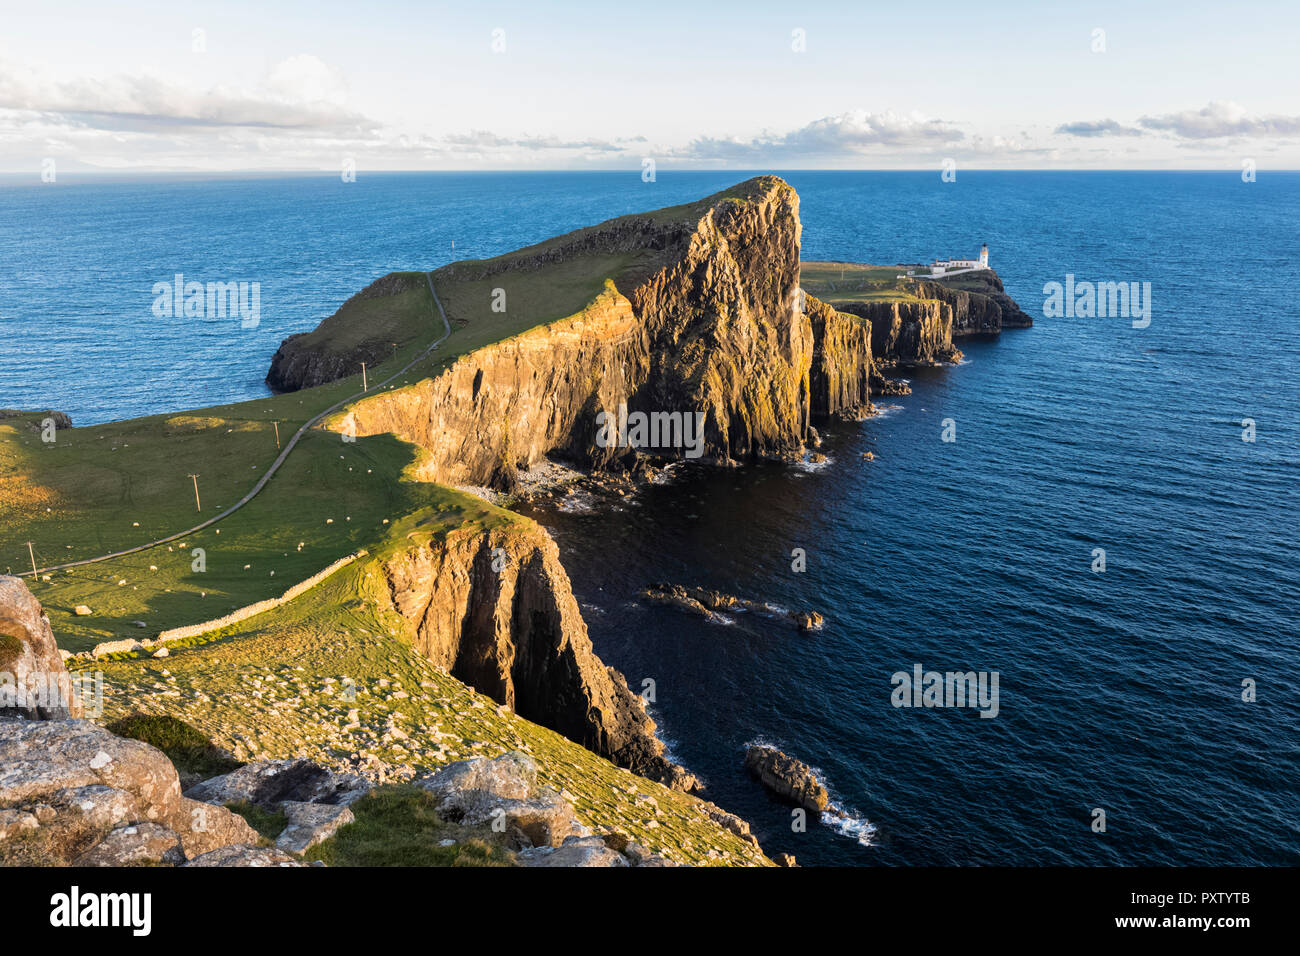 UK, Scotland, Inner Hebrides, Isle of Skye, lighthouse at Neist Point - Stock Image